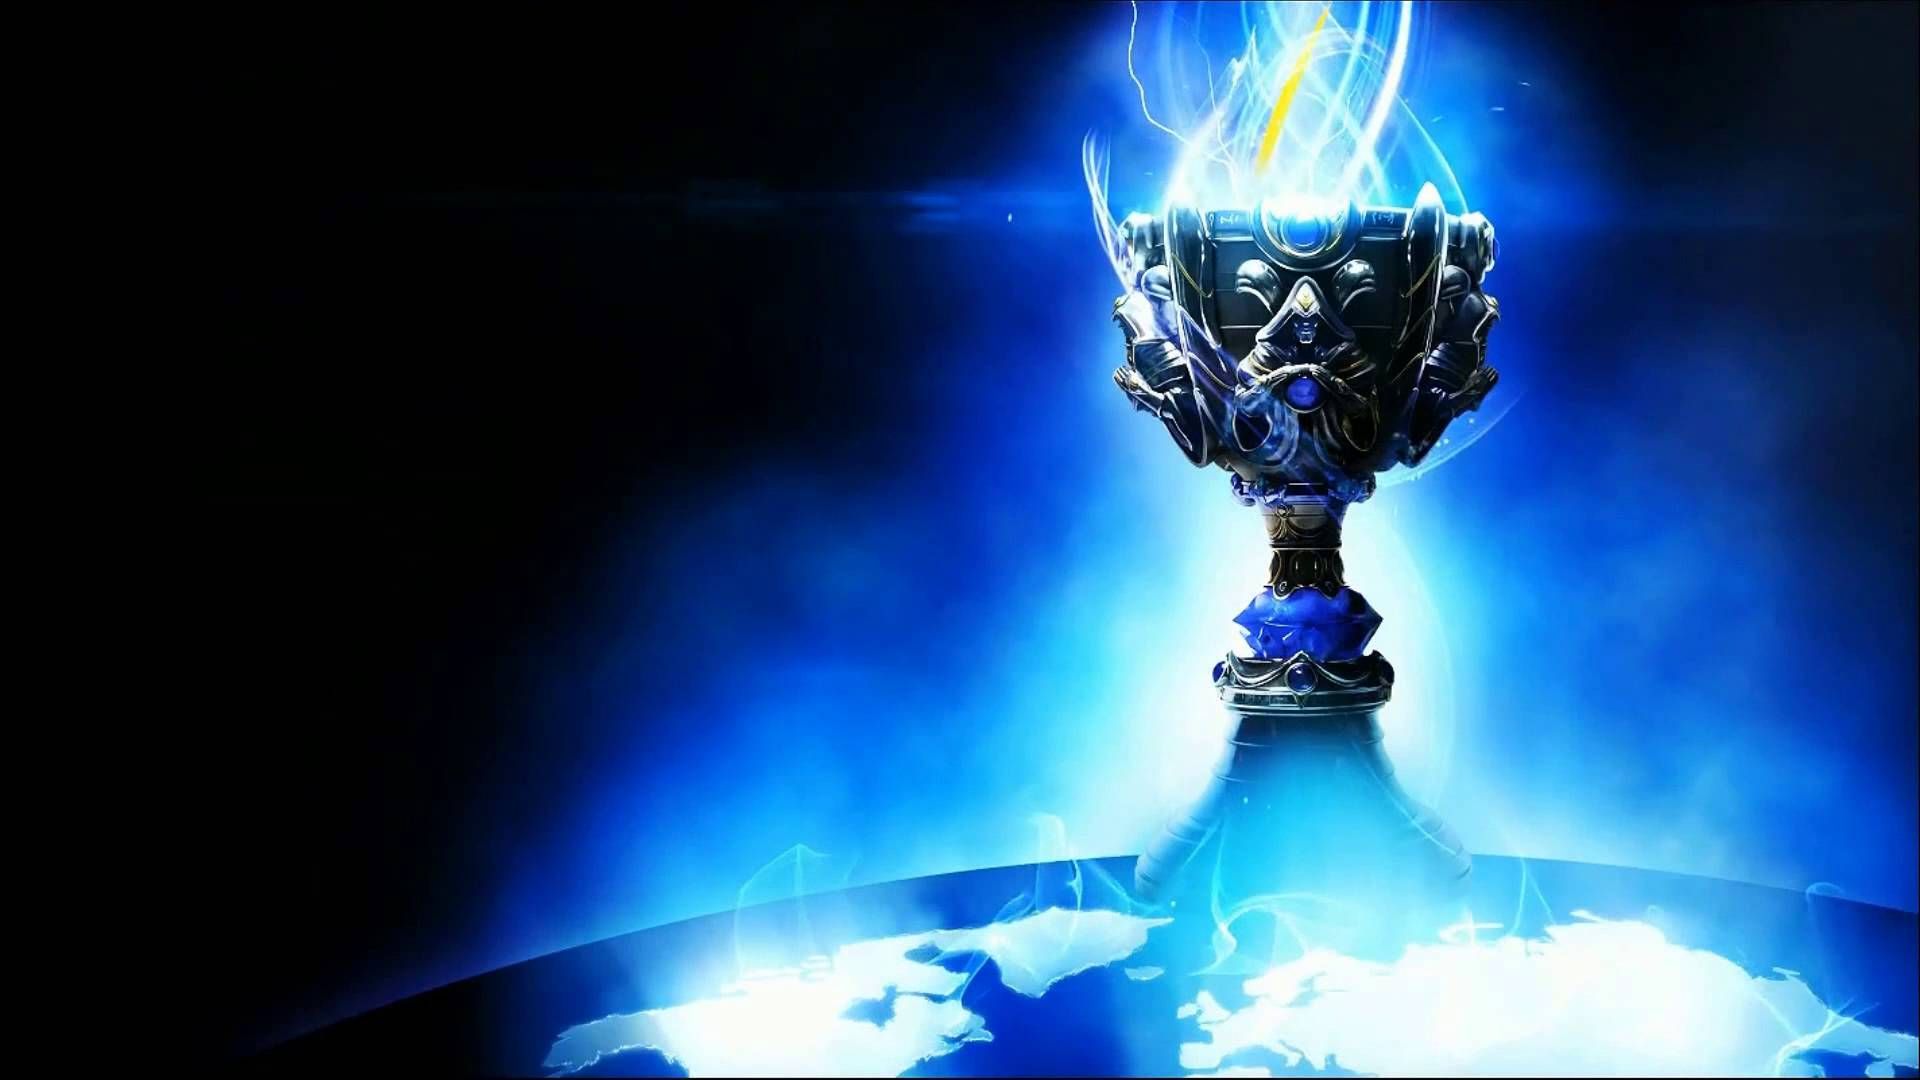 how to get a moving league of legends wallpaper